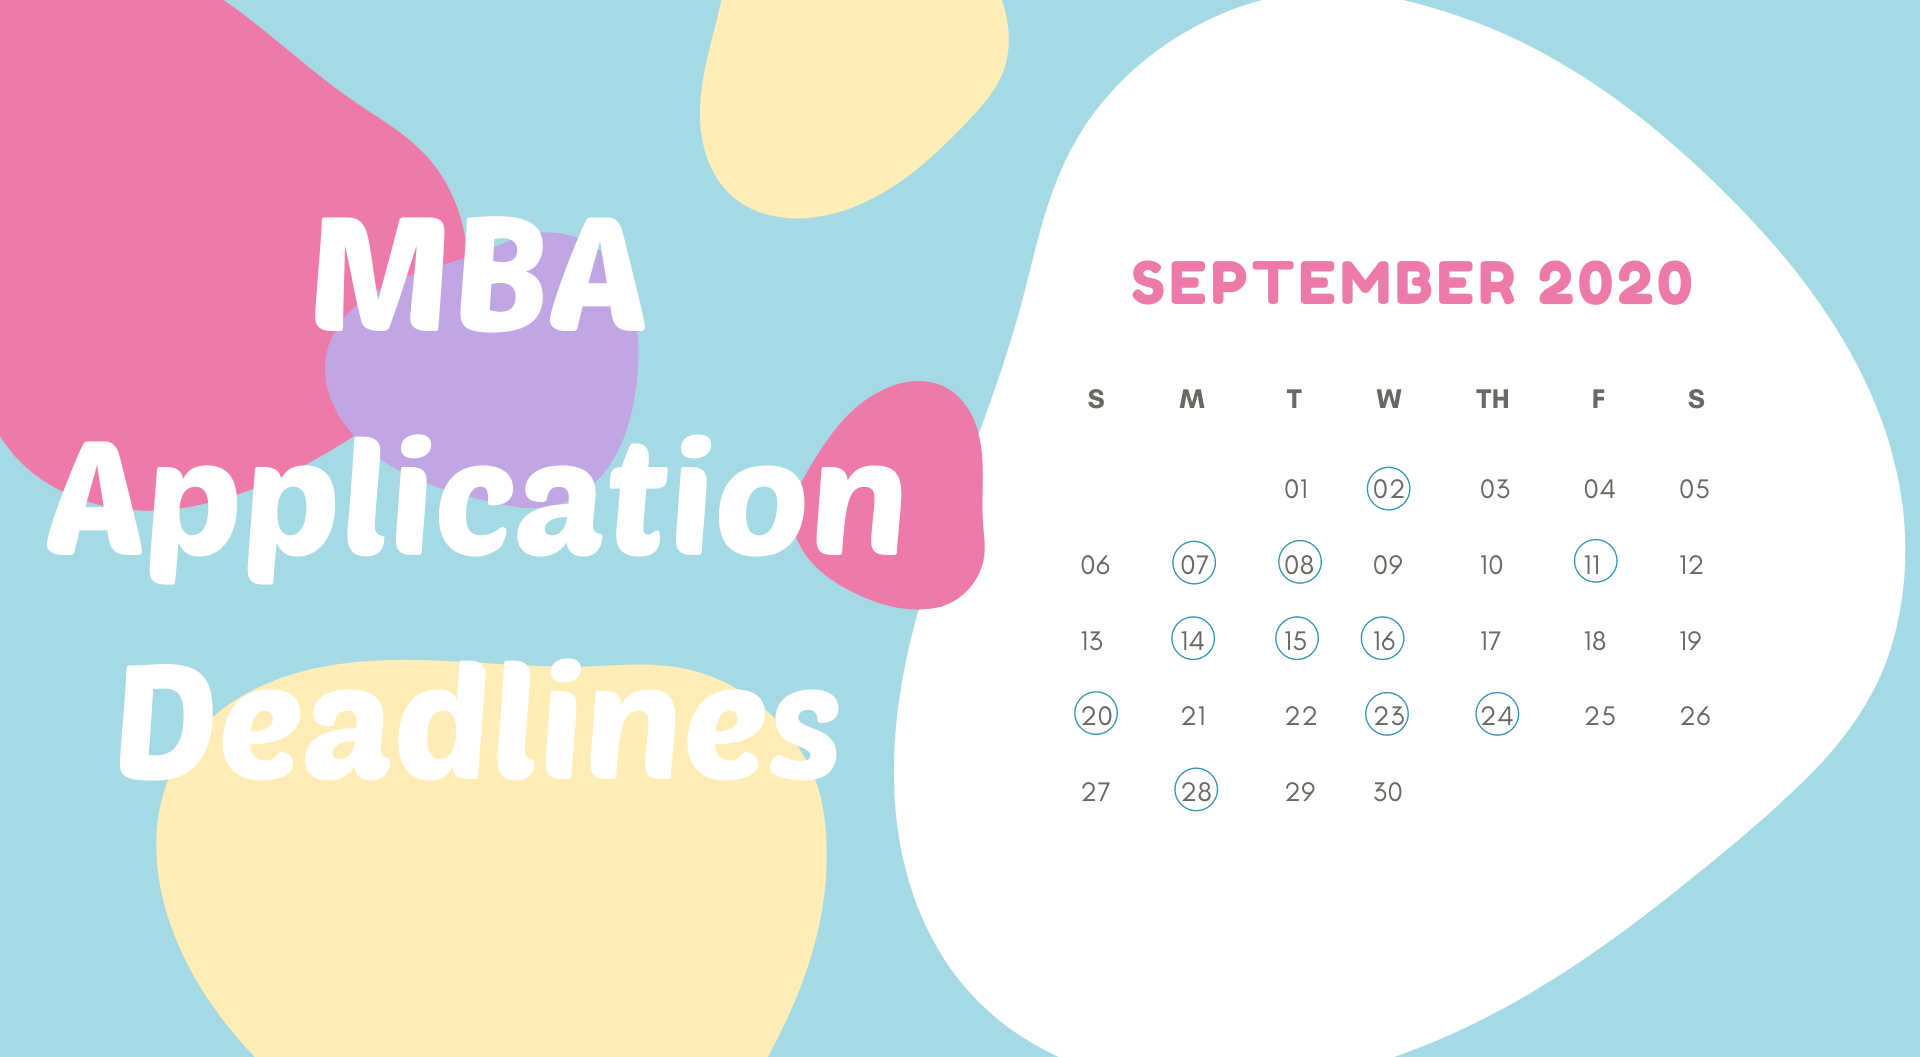 MBA Application Deadlines – September 2020